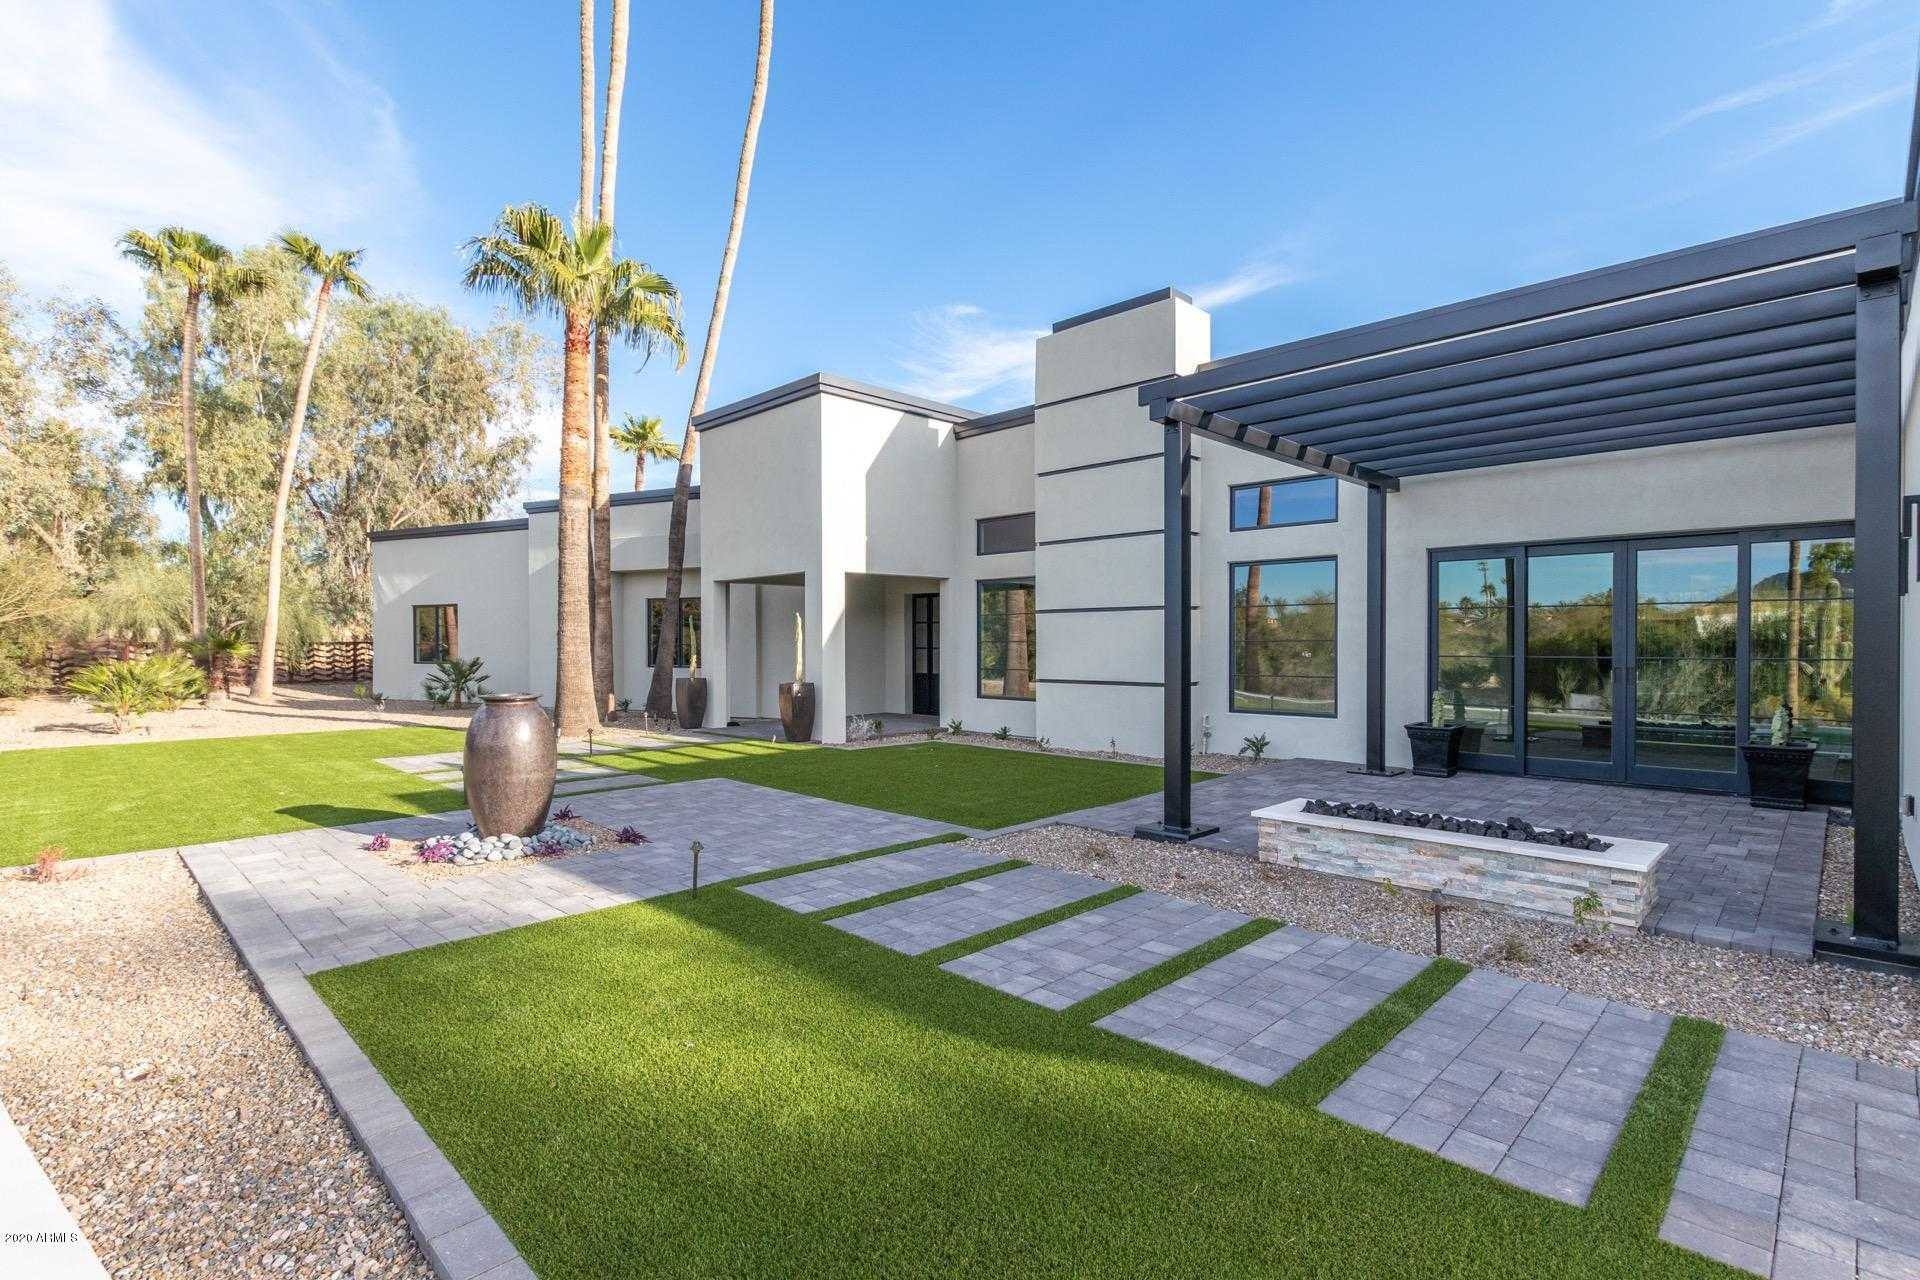 $3,799,000 - 5Br/6Ba - Home for Sale in Arroyo Verde, Paradise Valley